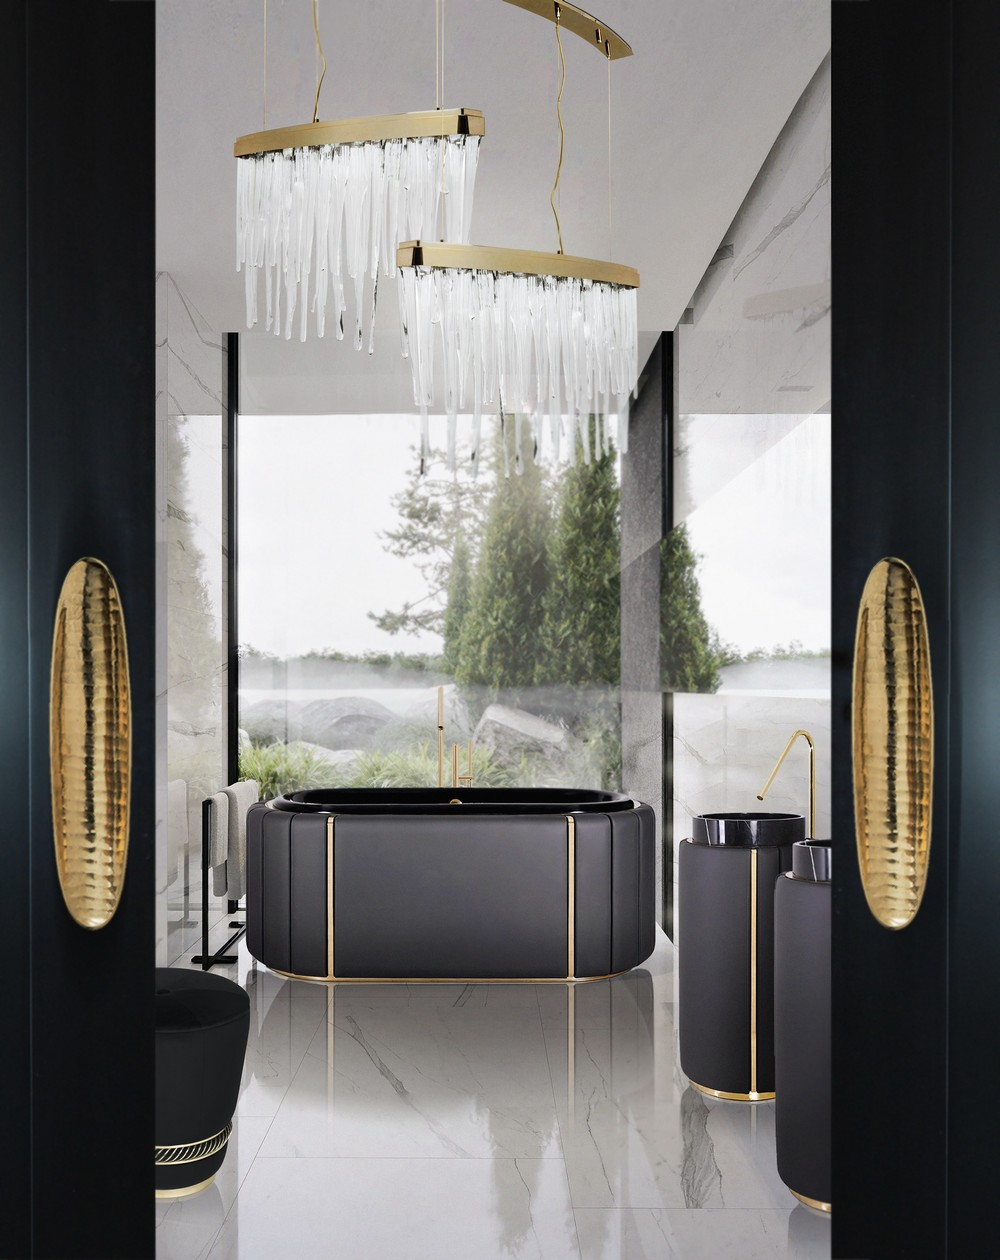 Bathroom Design Ideas Enhance Your Space with Jewelry Hardware bathroom design ideas Bathroom Design Ideas: Enhance Your Space with Jewelry Hardware Bathroom Design Ideas Enhance Your Space with Jewelry Hardware